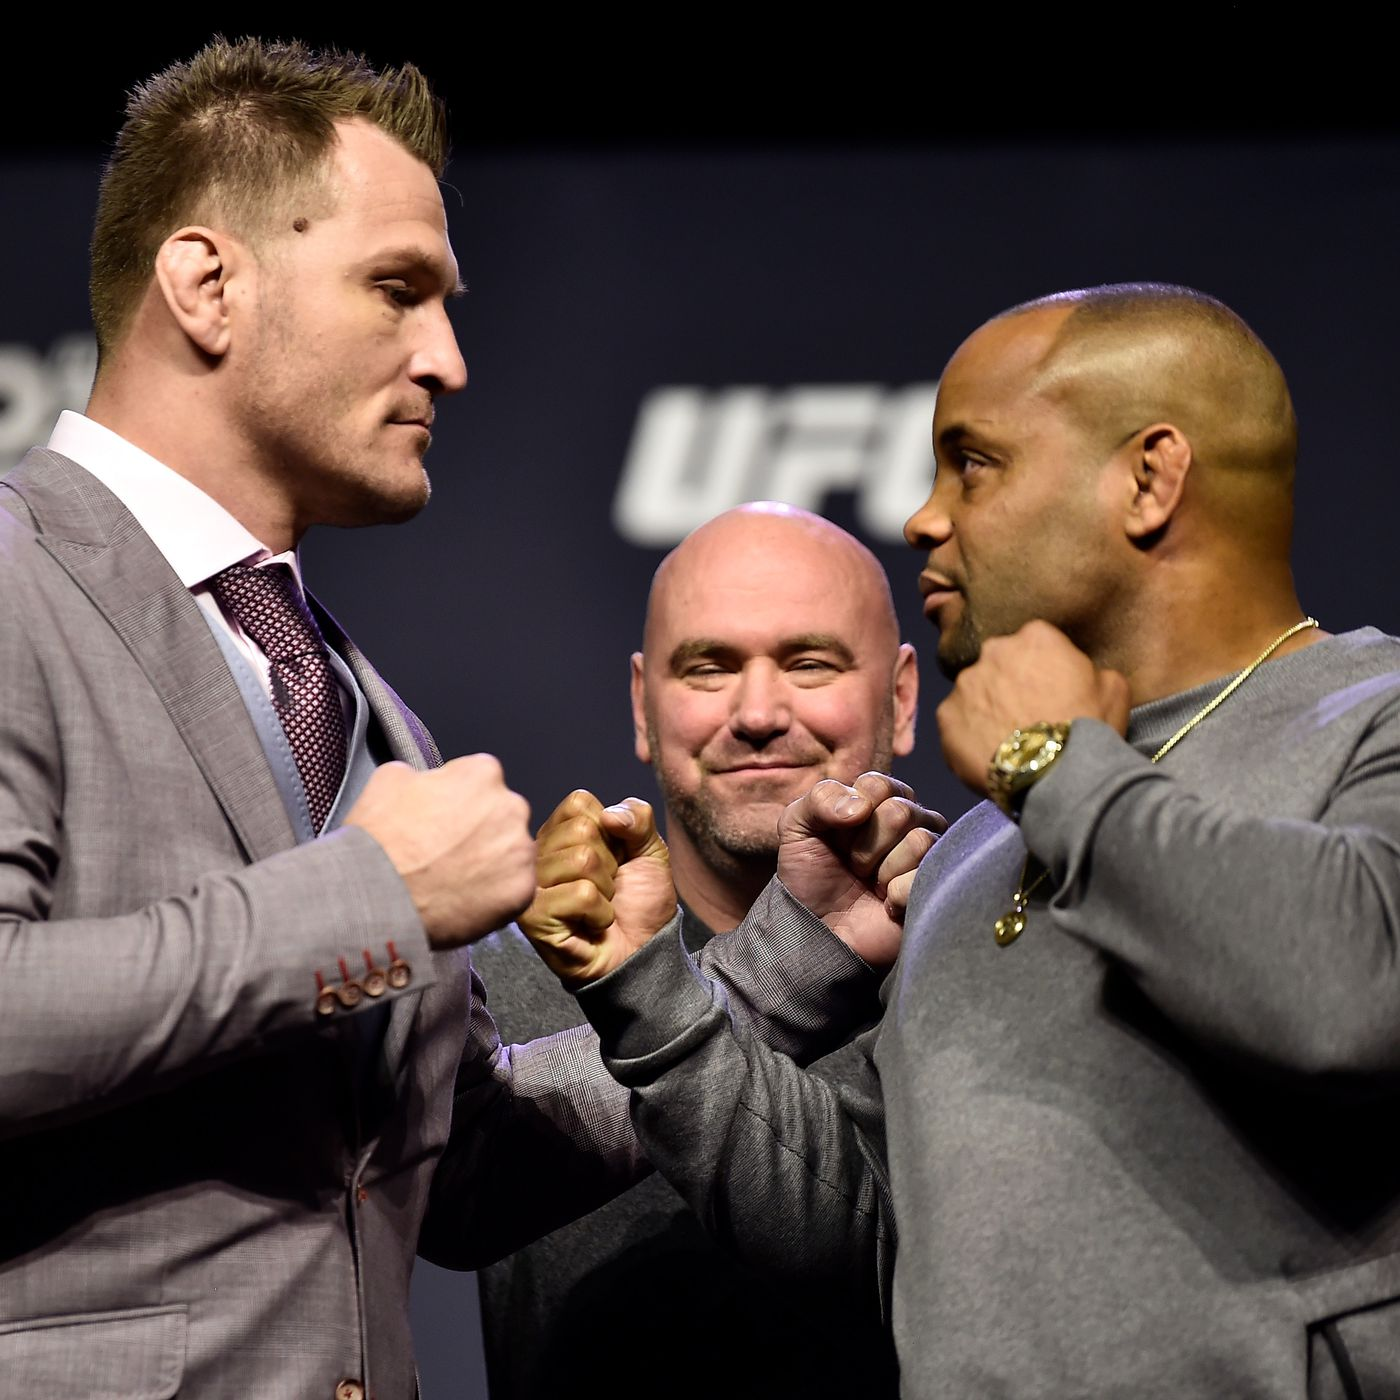 Latest Ufc 252 Fight Card Ppv Lineup For Miocic Vs Cormier 3 On Aug 15 In Las Vegas Mmamania Com